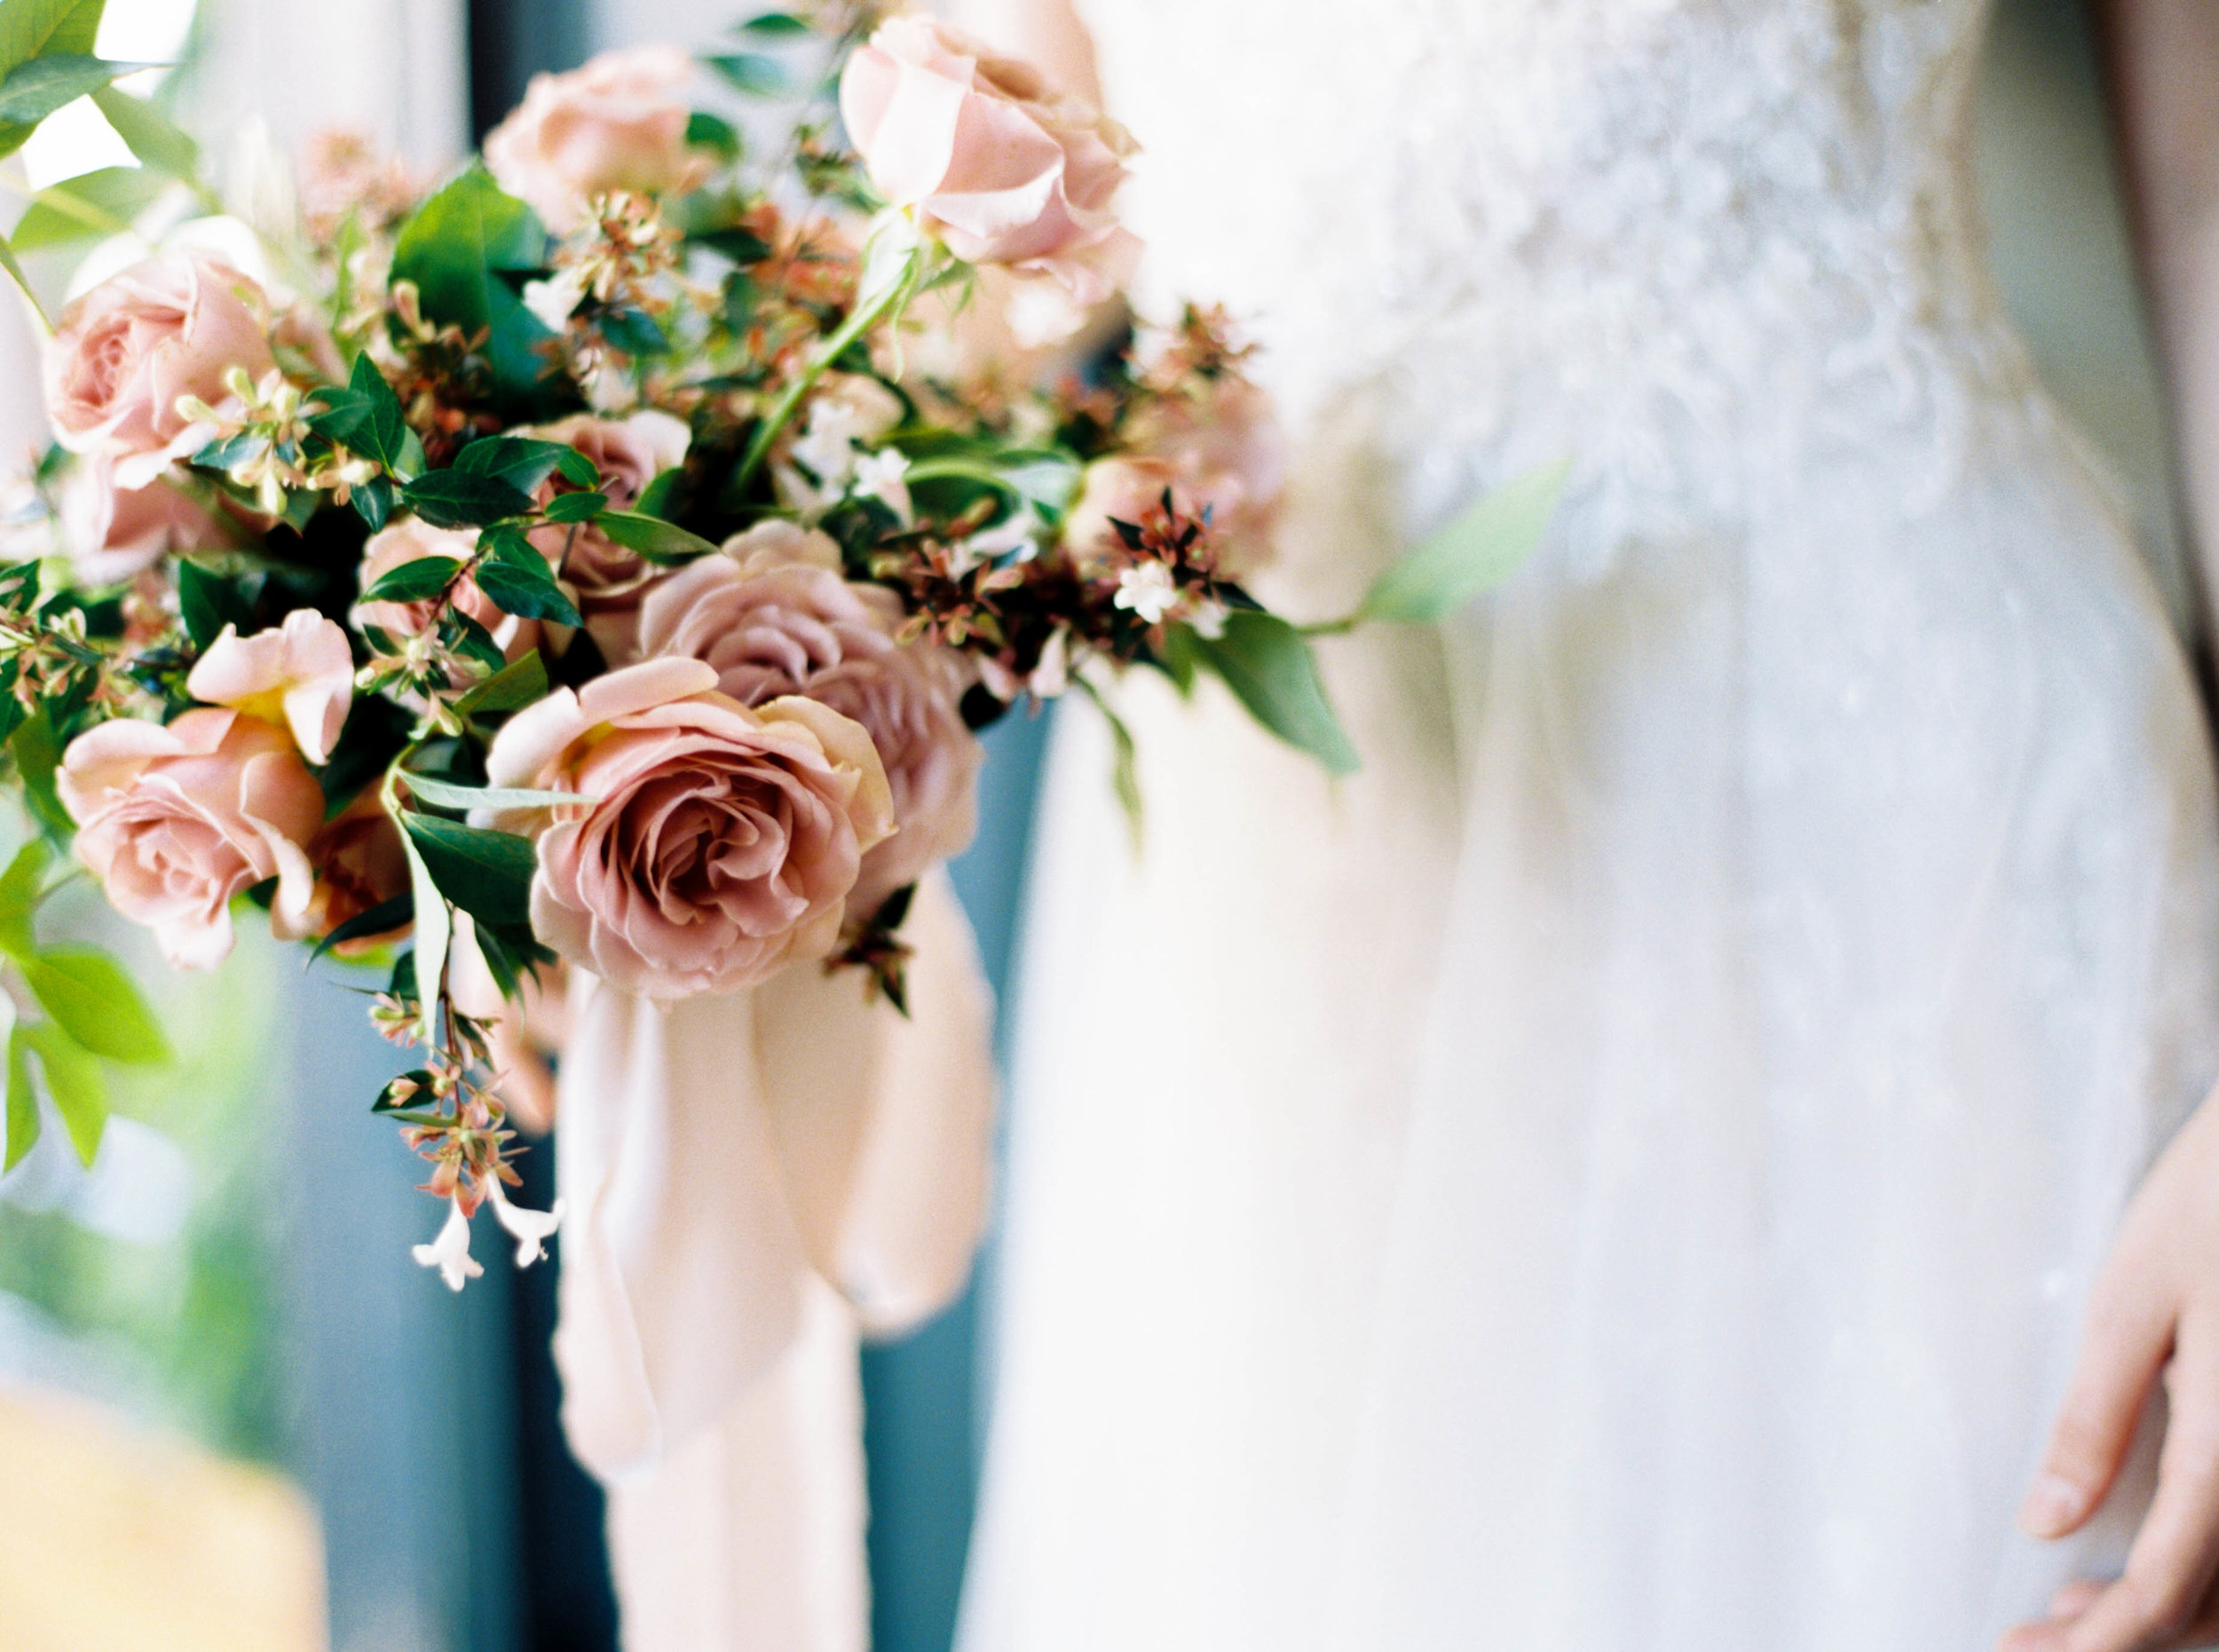 10 Things your film lab wishes you knew,  sarah carpenter photography, ireland fine art film wedding photographer, destintaion film photography, workshop host